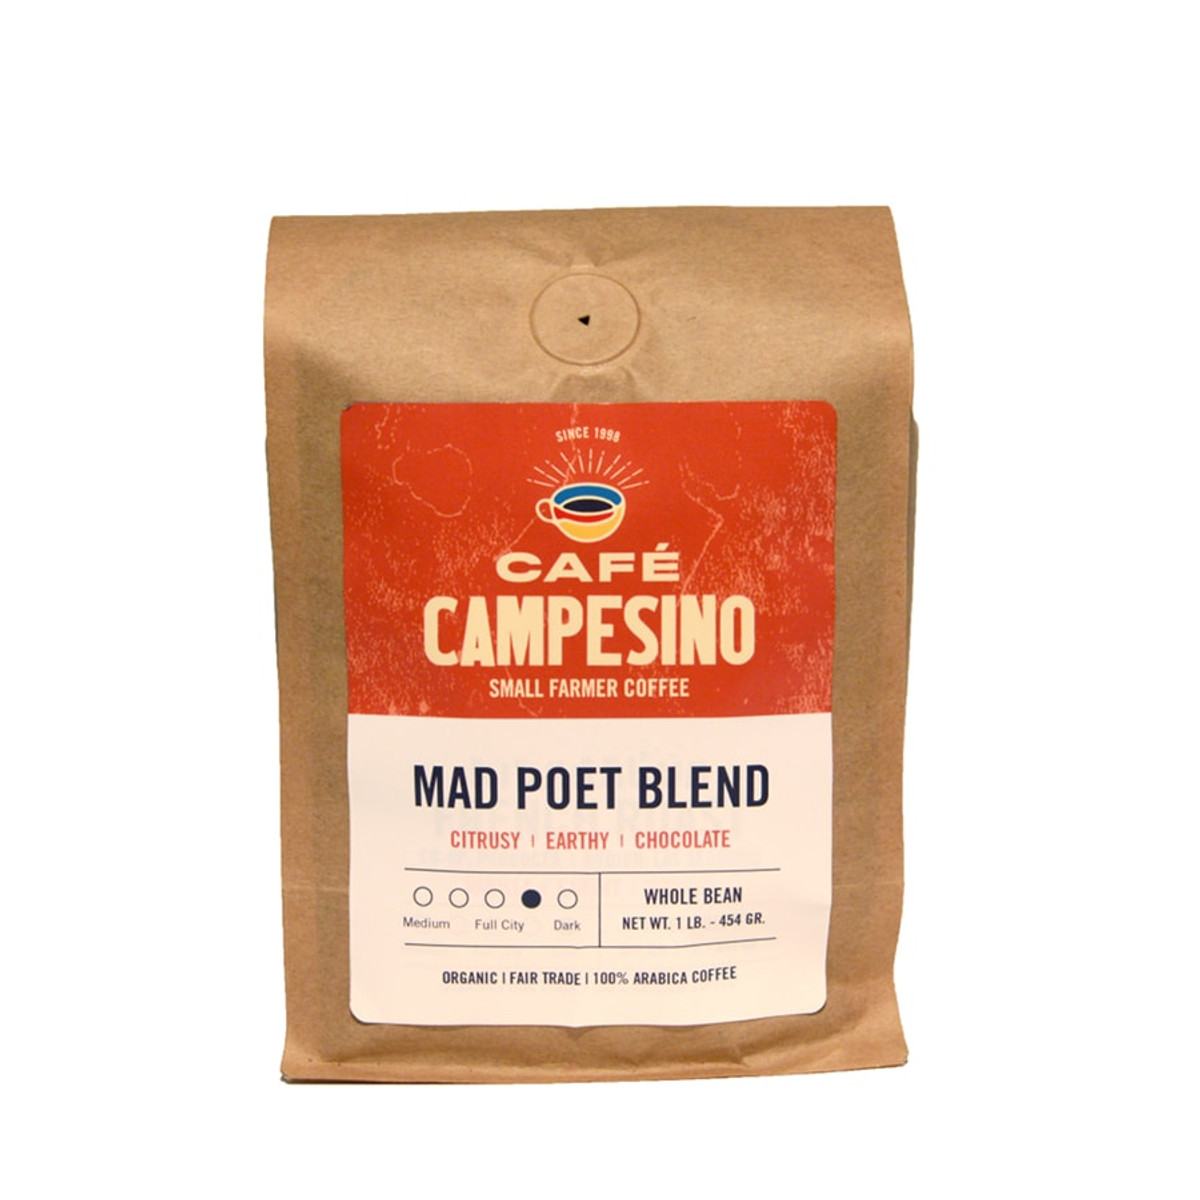 A blend of African, Central American and Indonesian coffees, Mad Poet is full-bodied with a roast profile that brings a little heft but still allows for bright African acidities.